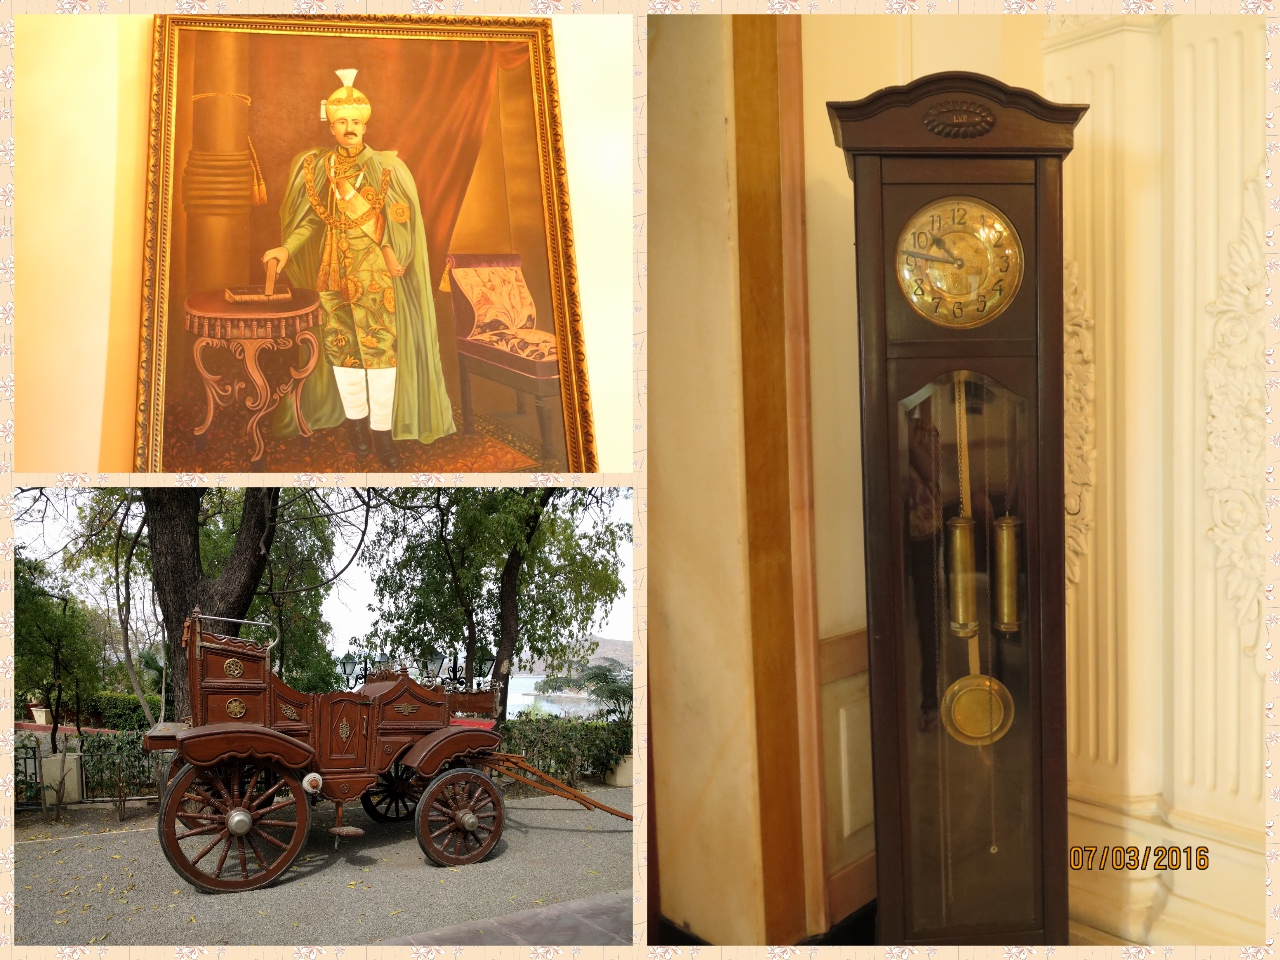 Maharaja's Painting, an antique clock and a Royal Carriage